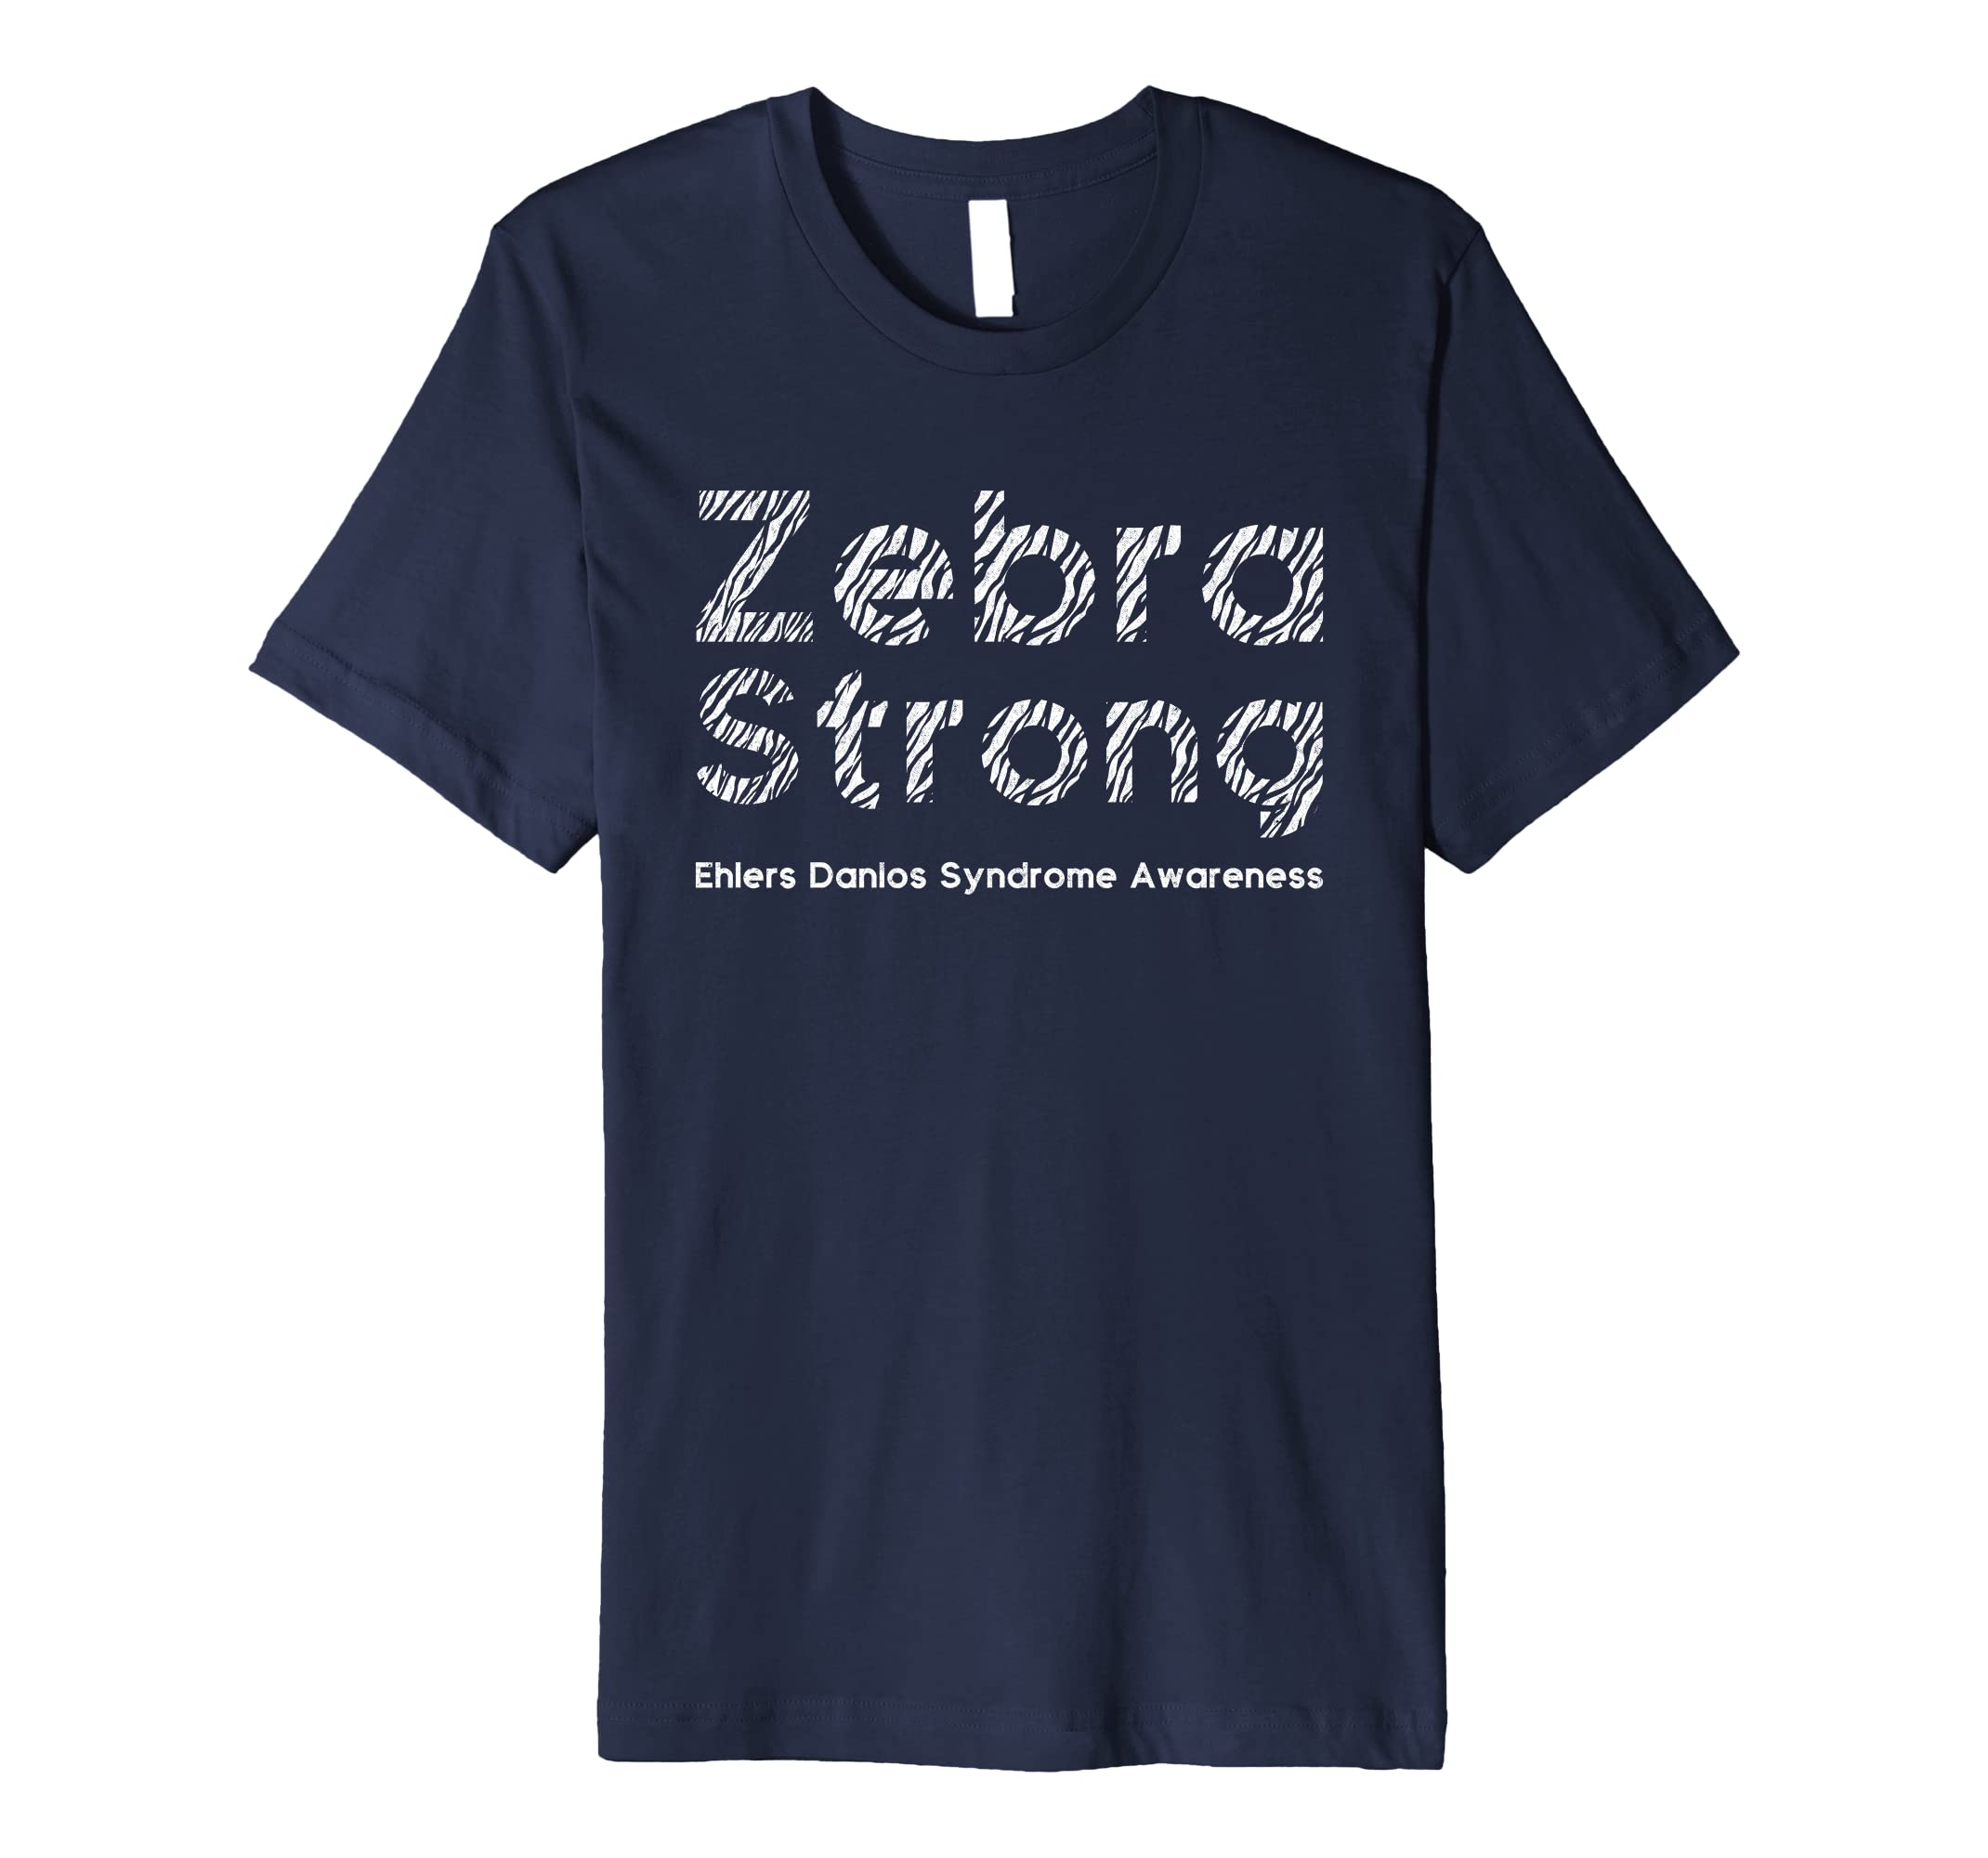 Zebra Strong - Ehlers Danlos Syndrome EDS Awareness Shirt-AZP